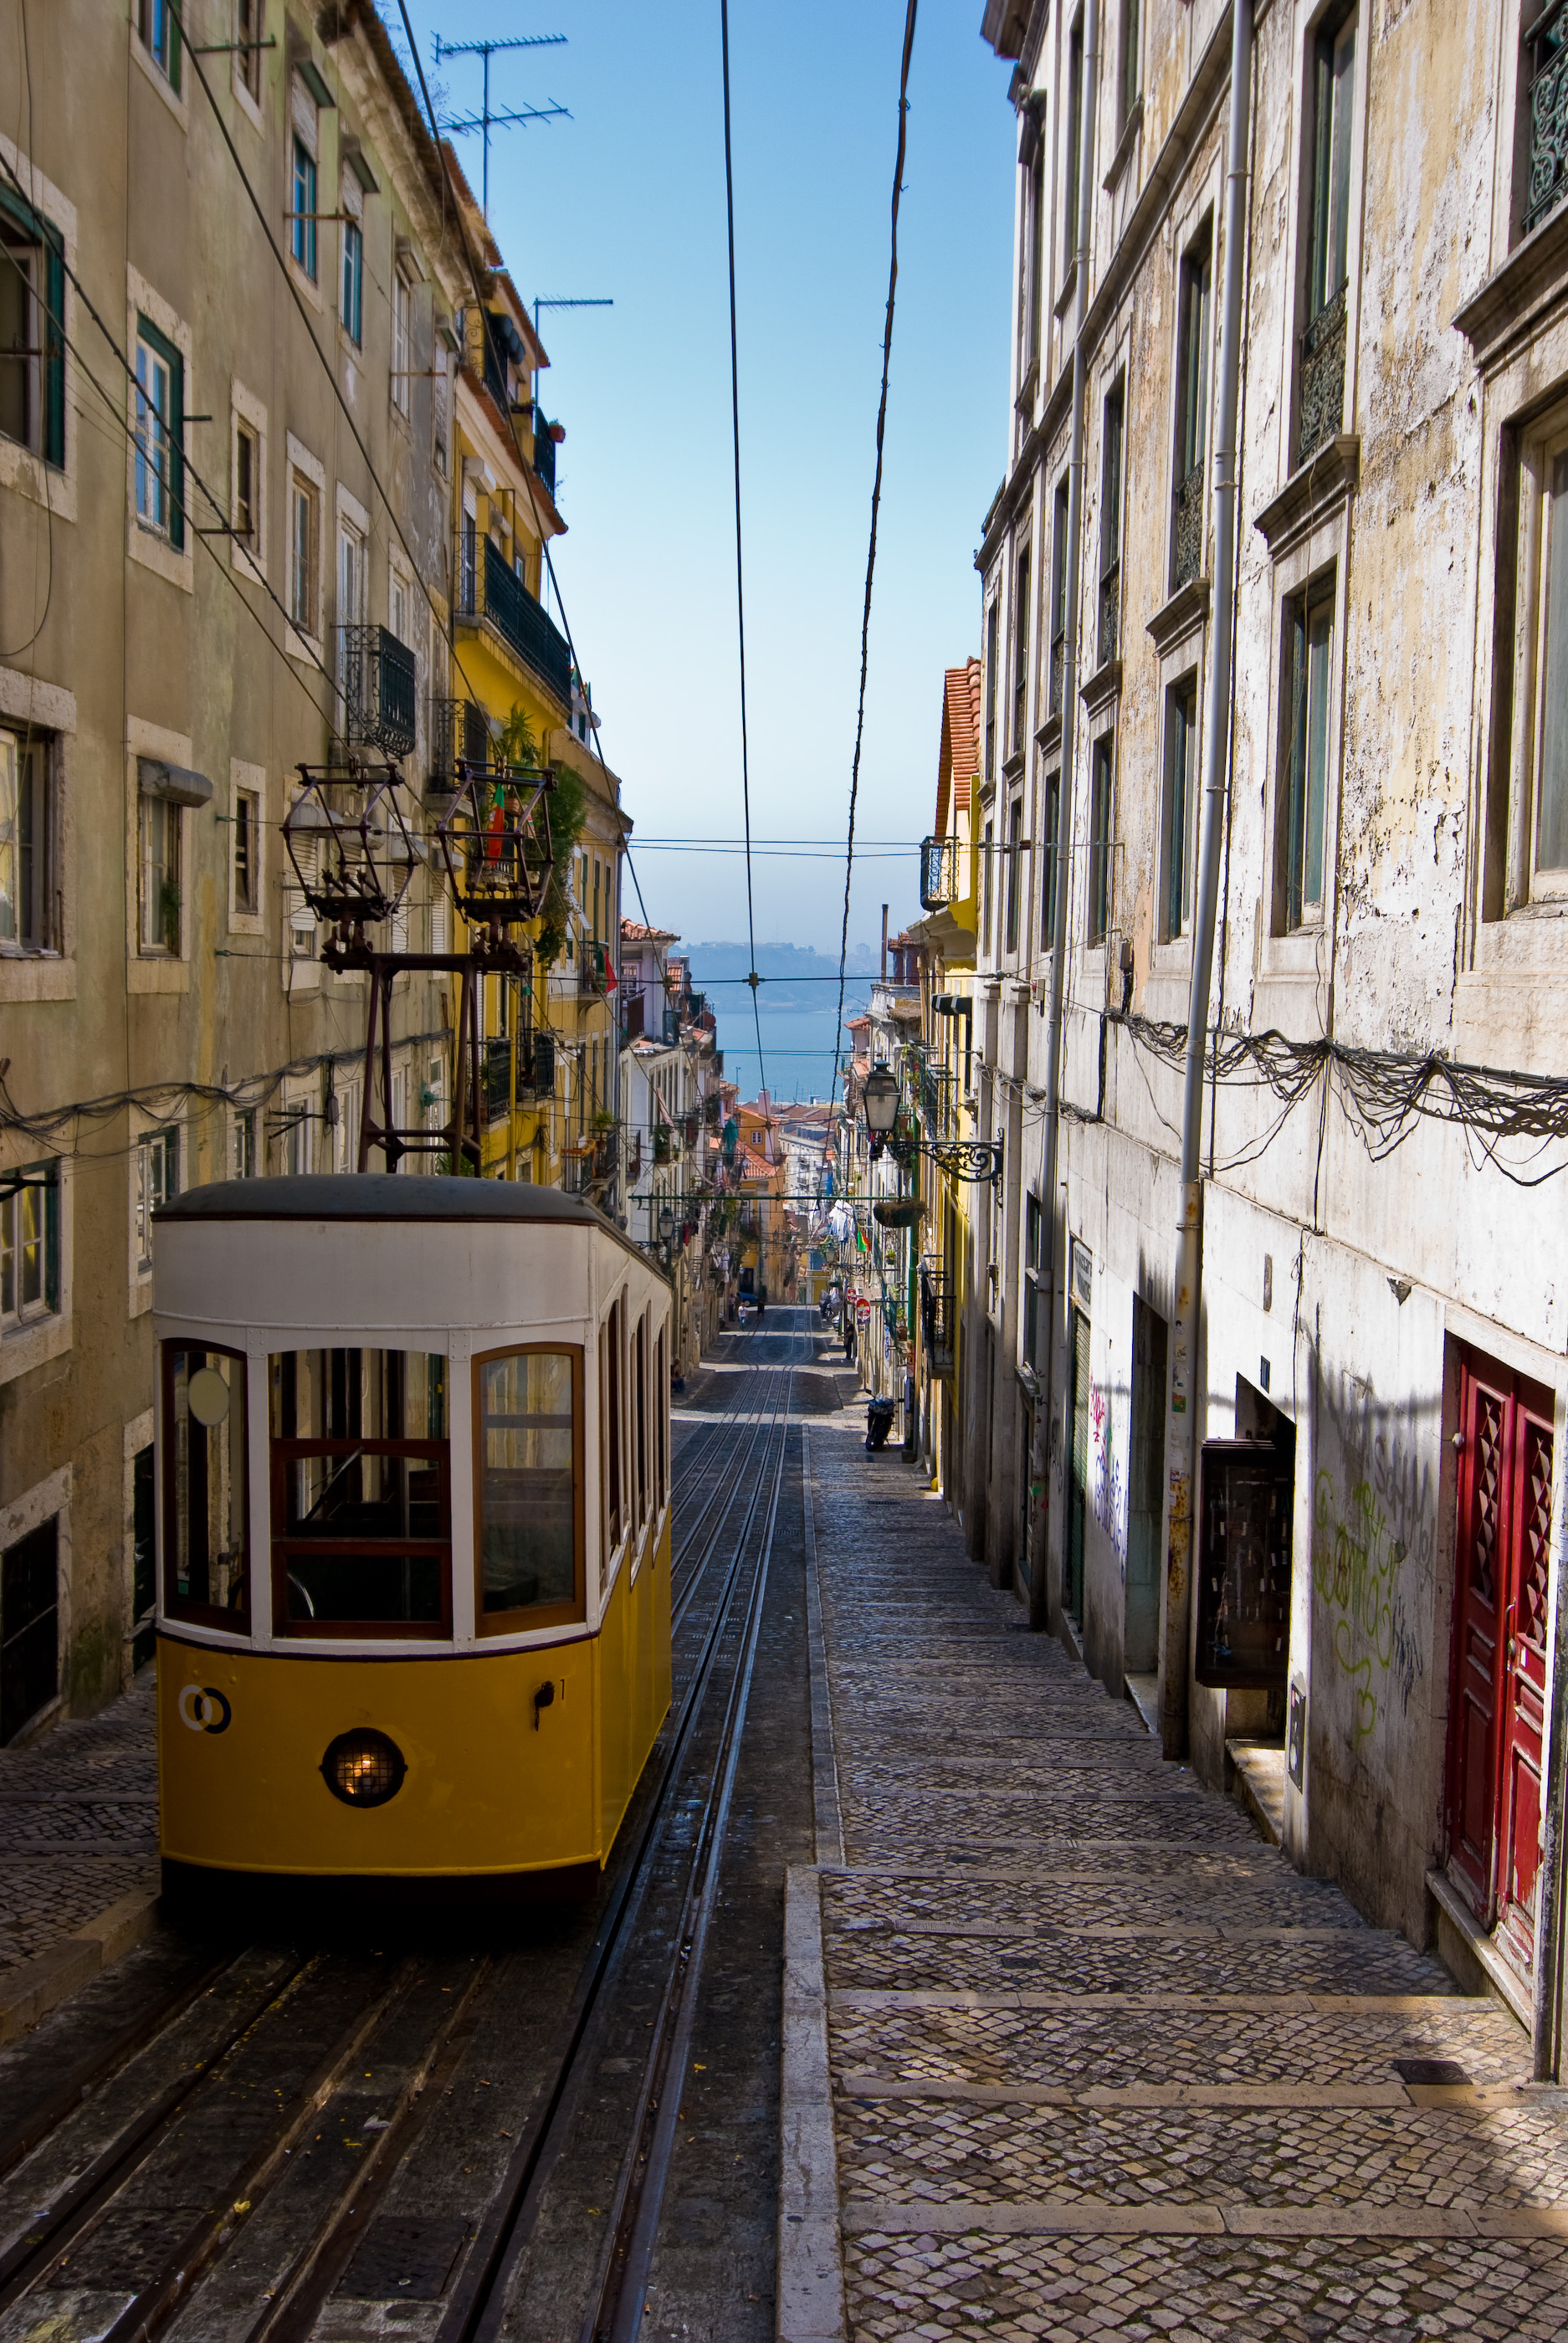 http://upload.wikimedia.org/wikipedia/commons/9/9c/Lisbon_-_typical_street_and_tramcar_in_the_Bairro_Alto.jpg